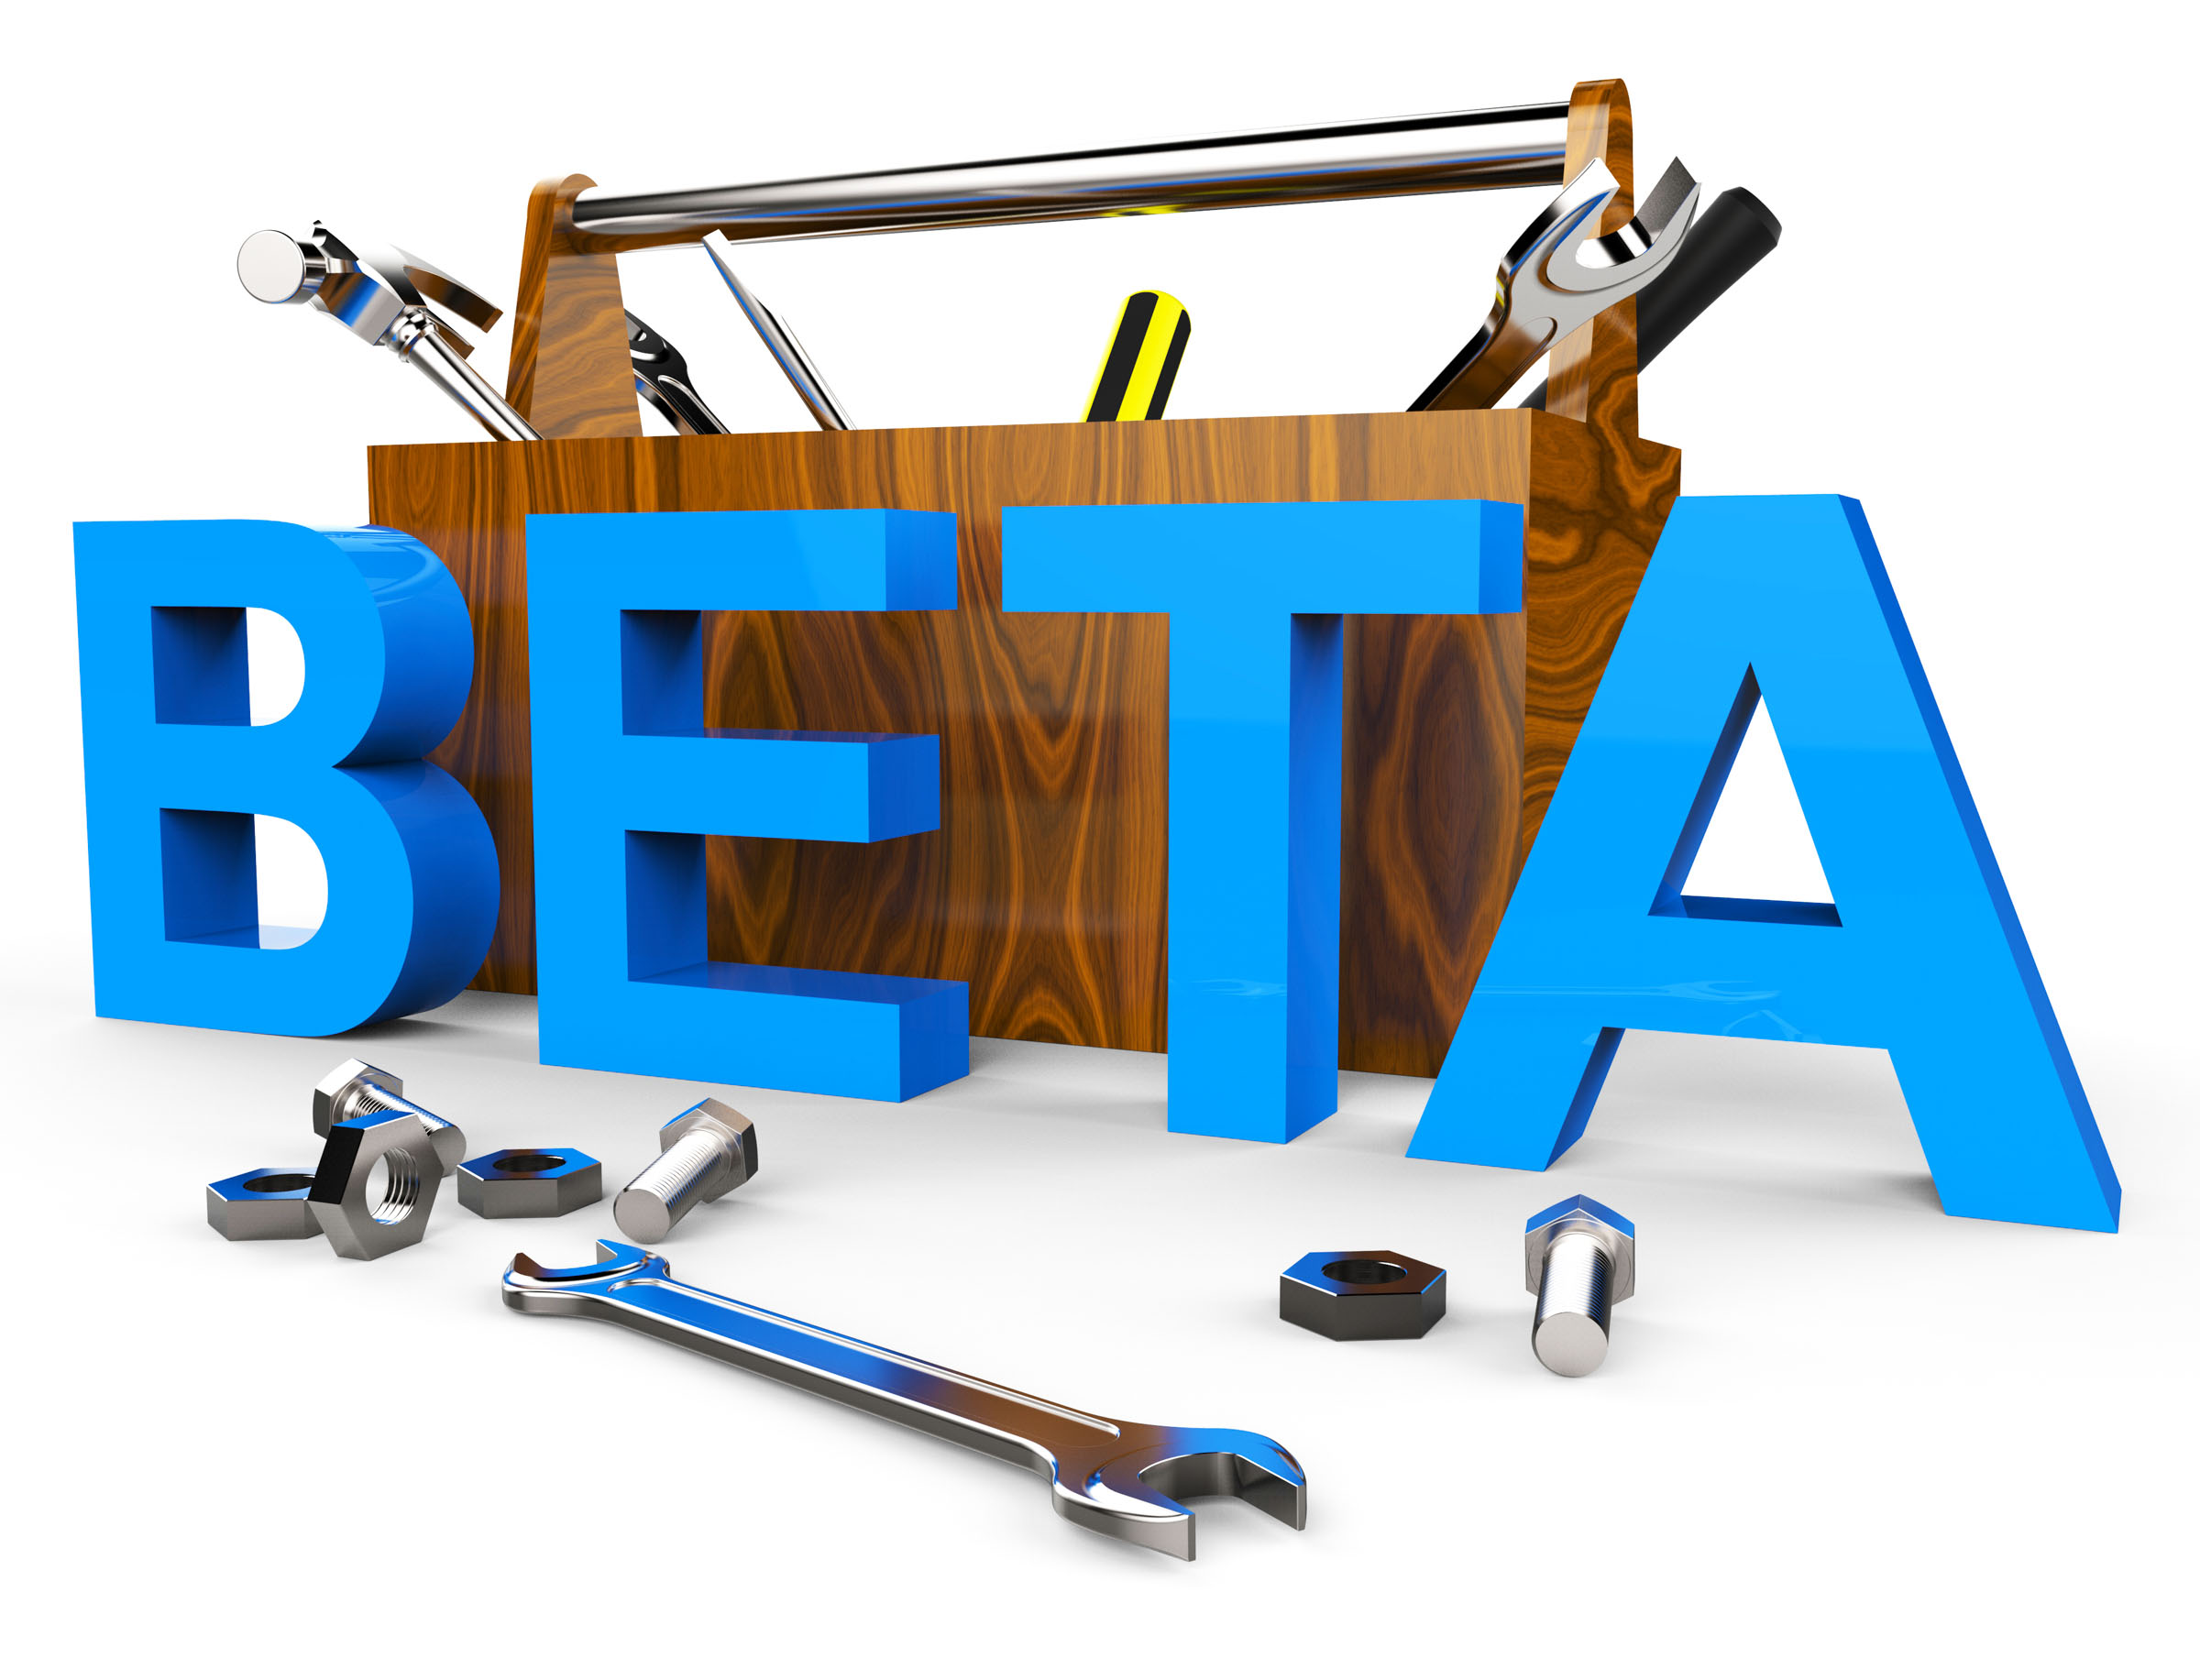 What you need to know about beta software.